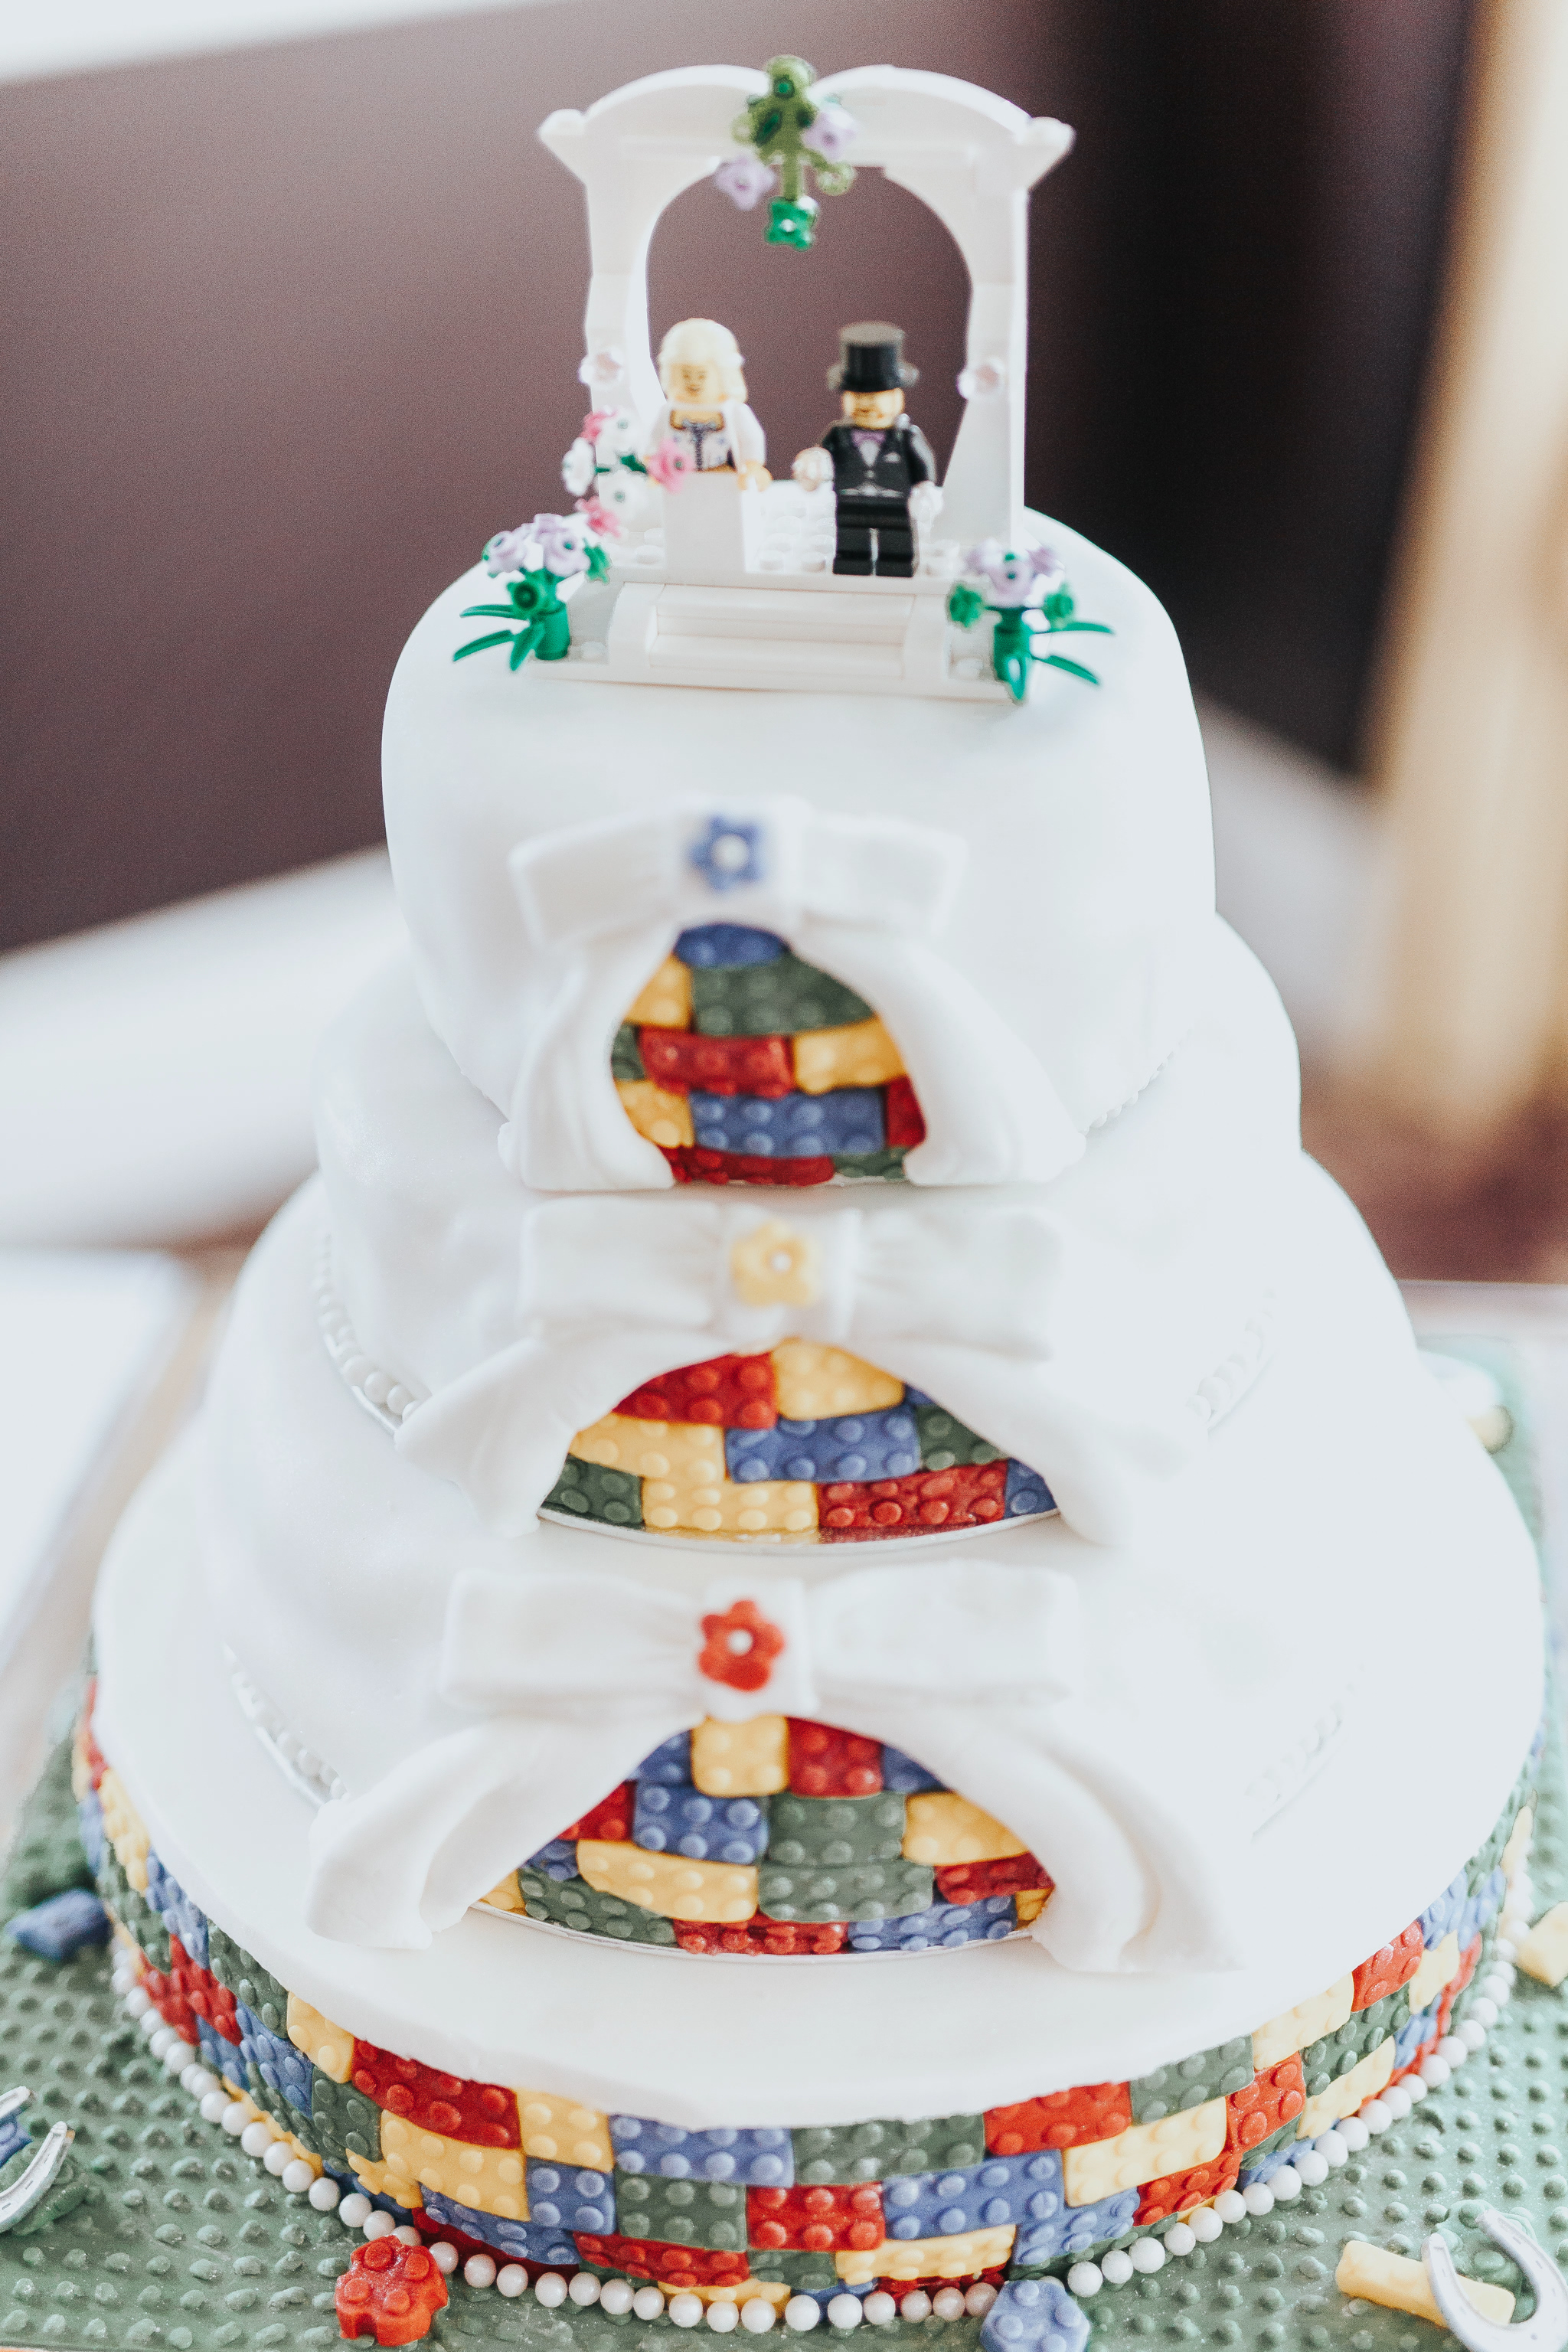 lego wedding cake ideas lego wedding cakes lego cake toppers lego brick cake